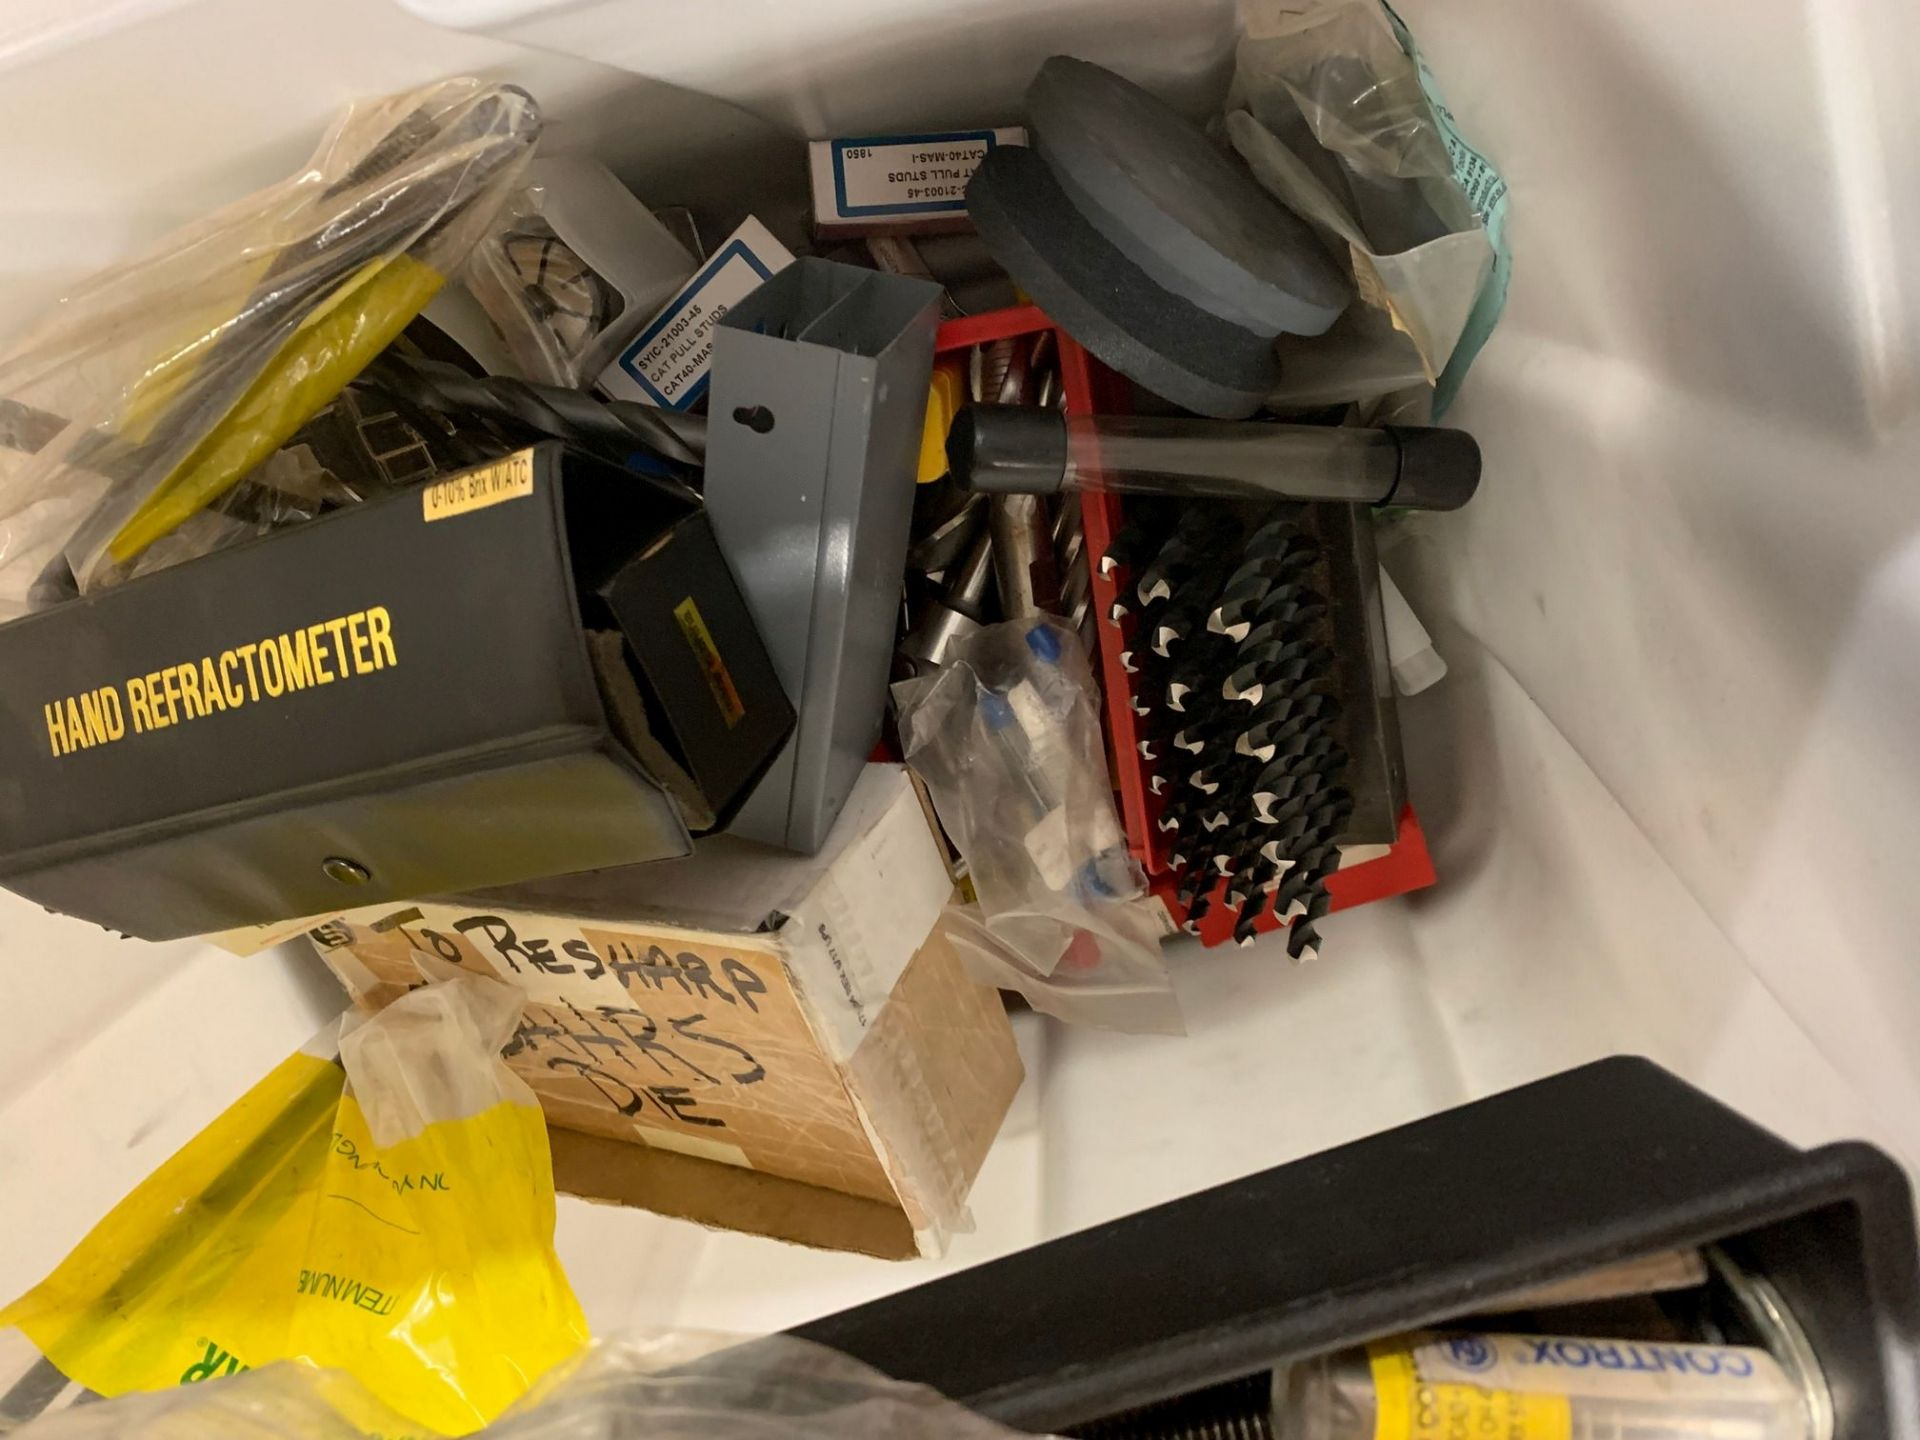 (LOT) DRILL INEXES, REFRACTOMETER & MISC. - Image 2 of 2